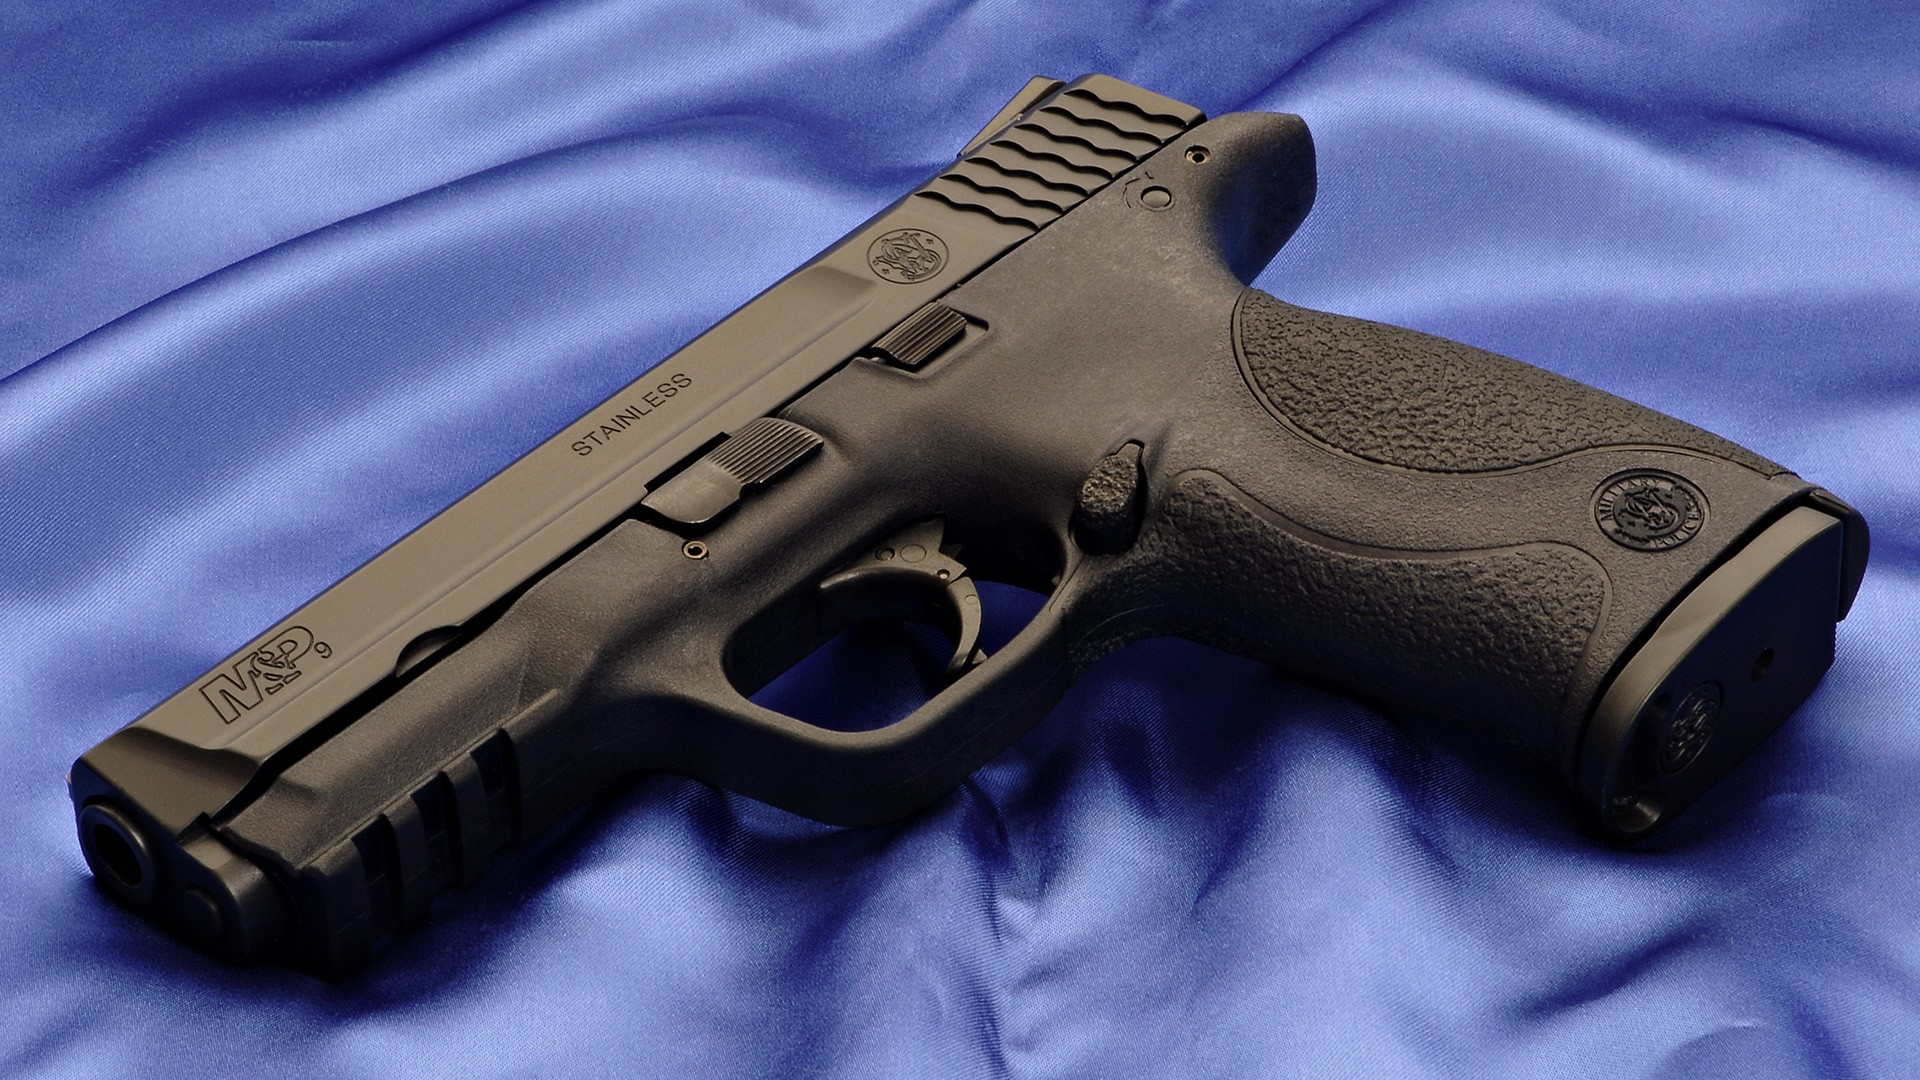 9mm Smith And Wesson   All about guns   Handguns 1920x1080